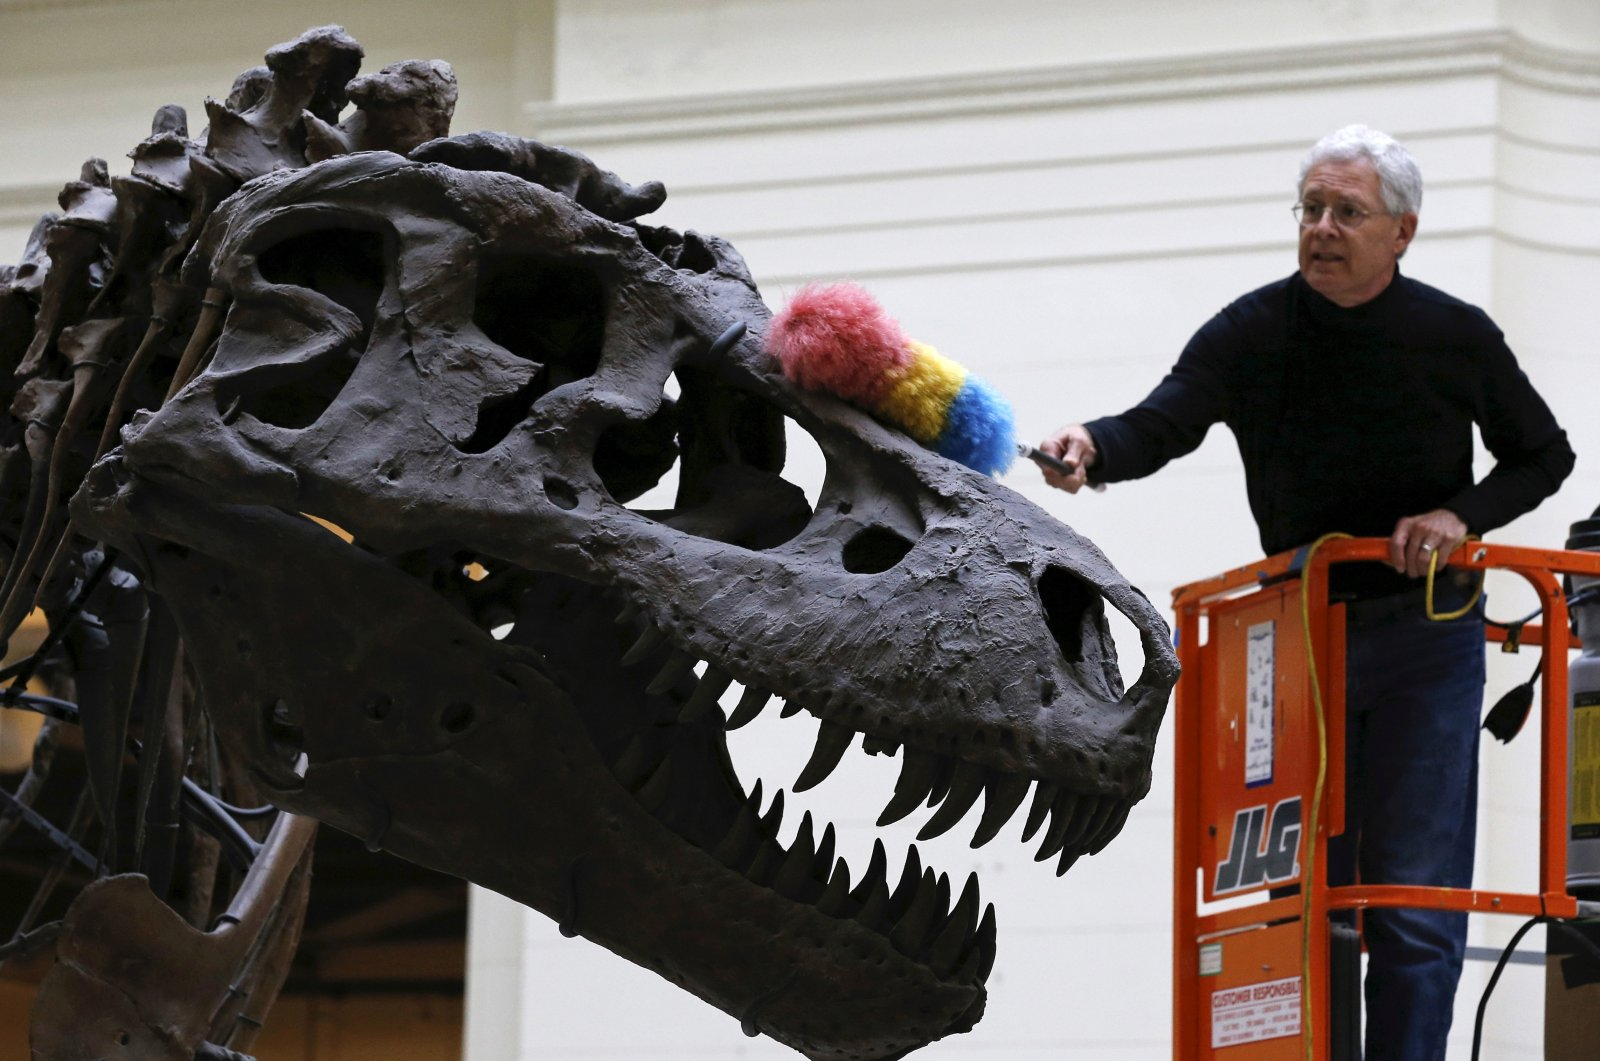 """A geologist uses a feather duster to clean the skeleton of a Tyrannosaurus rex known as """"Sue"""" at The Field Museum in Chicago, Illinois, U.S., June 11, 2015. (Reuters Photo)"""